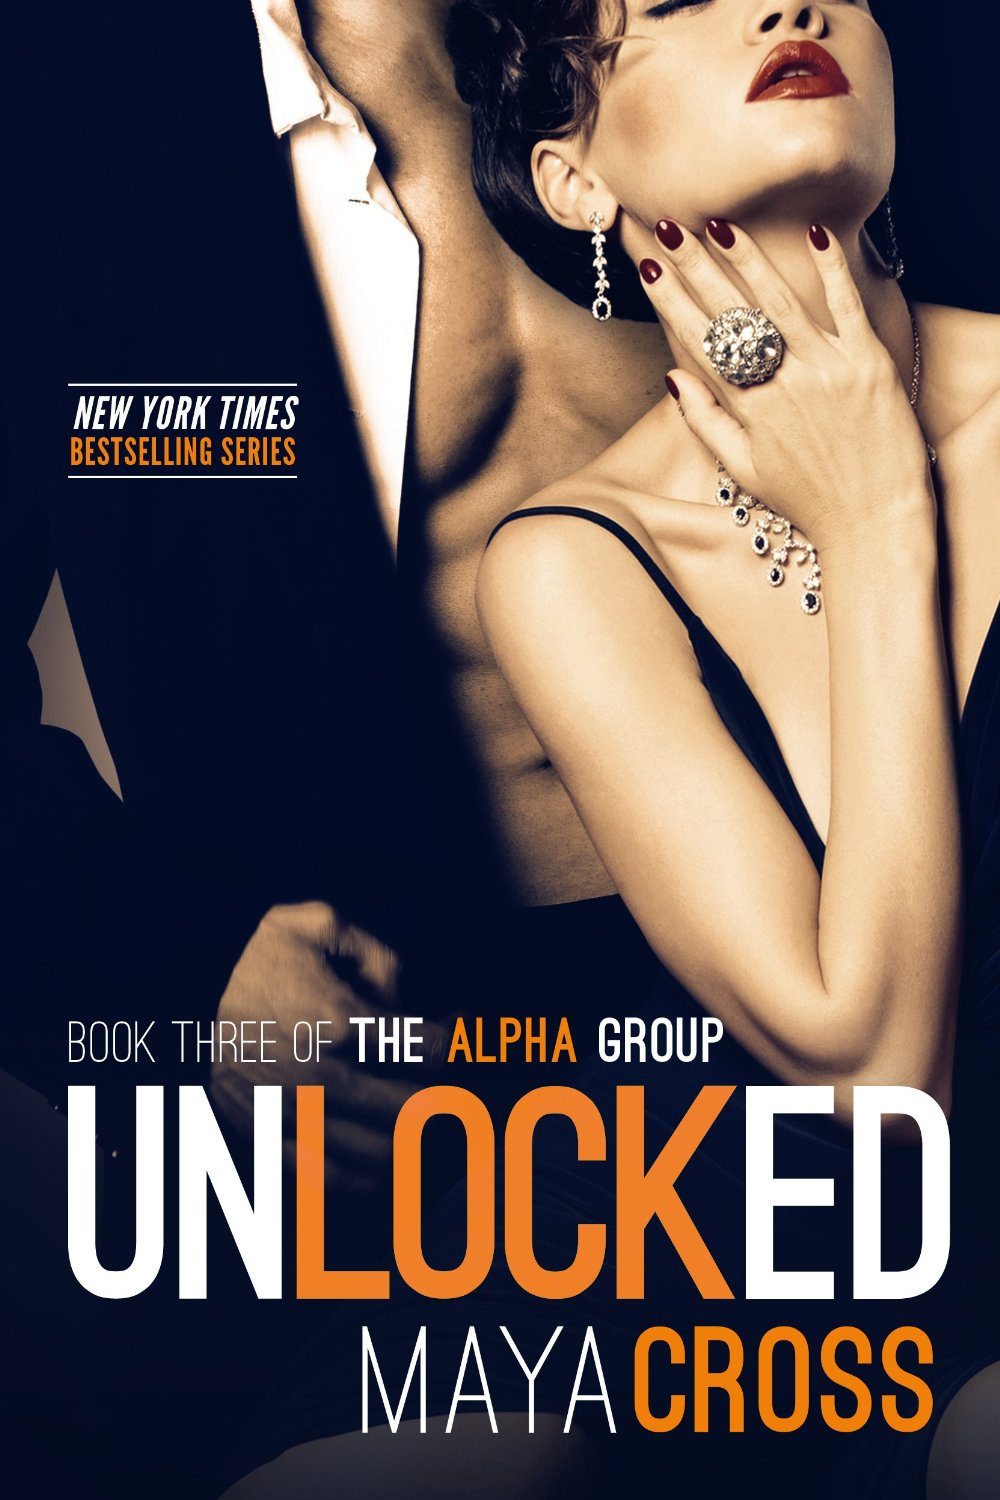 UnLocked - The Alpha Group book 3